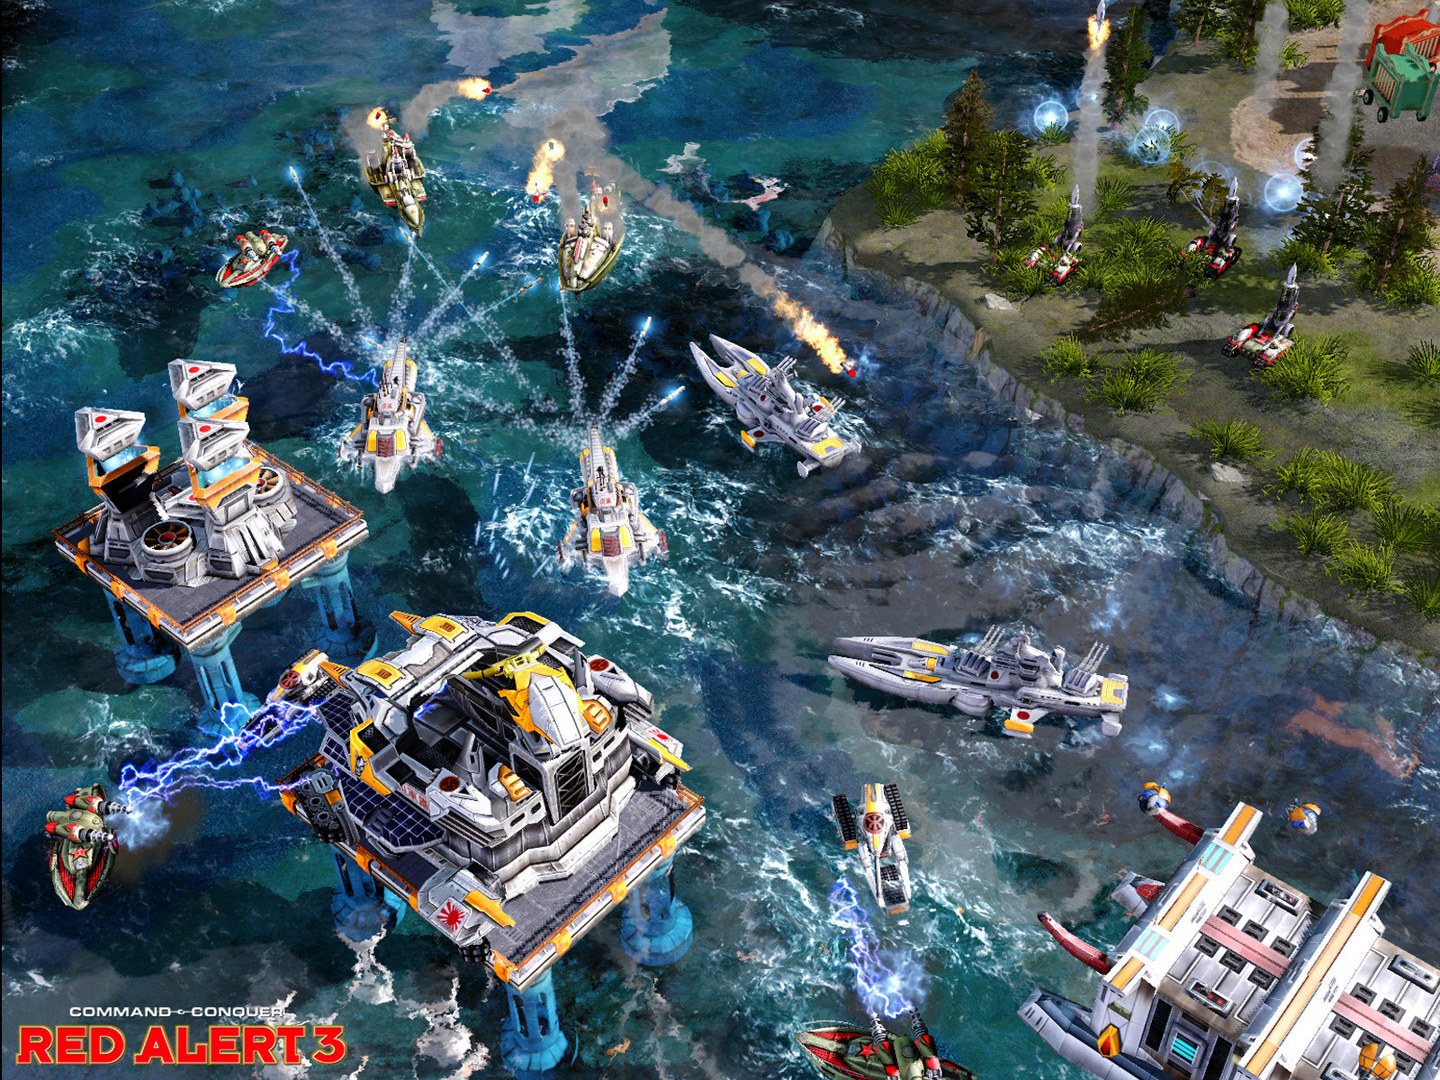 Red Alert 3 game